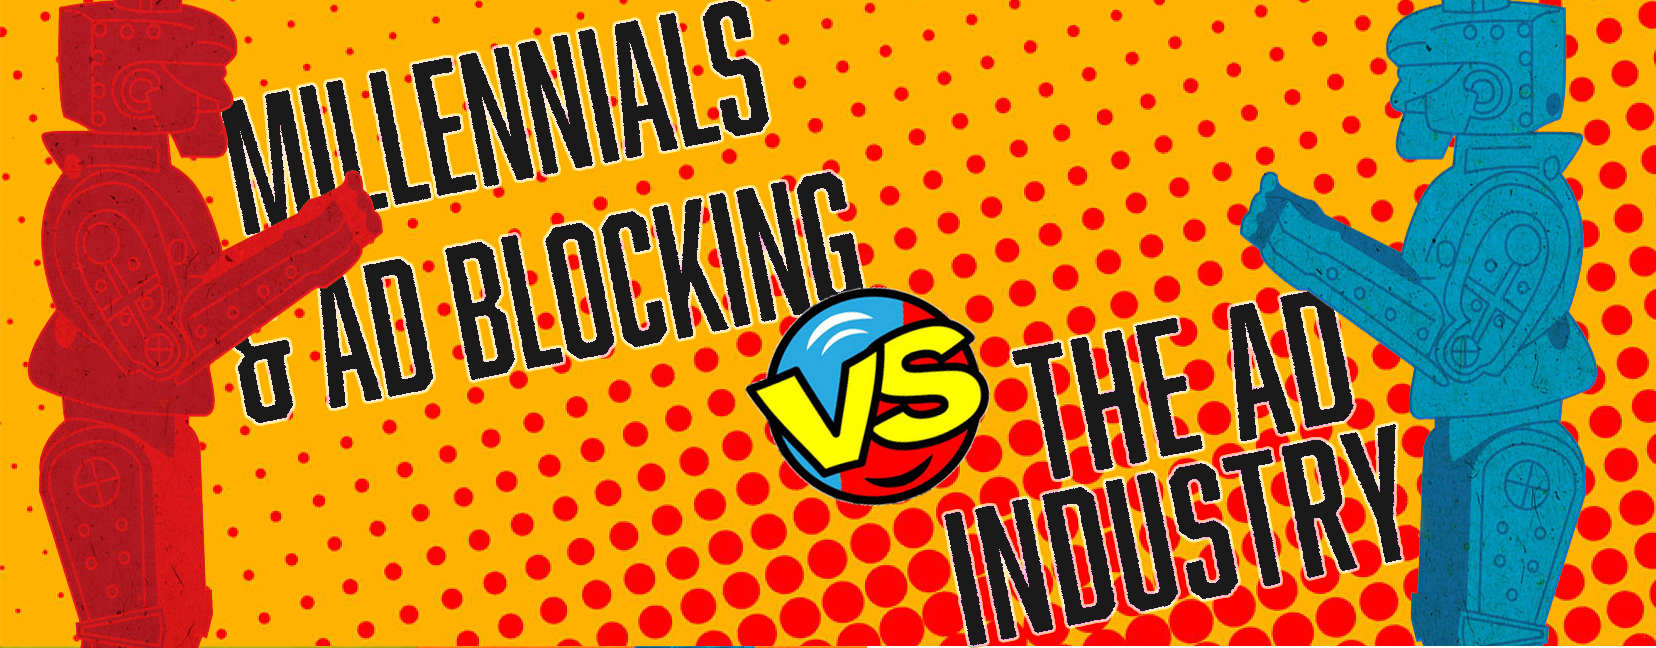 Millennials and Ad Blocking Versus the Ad Industry